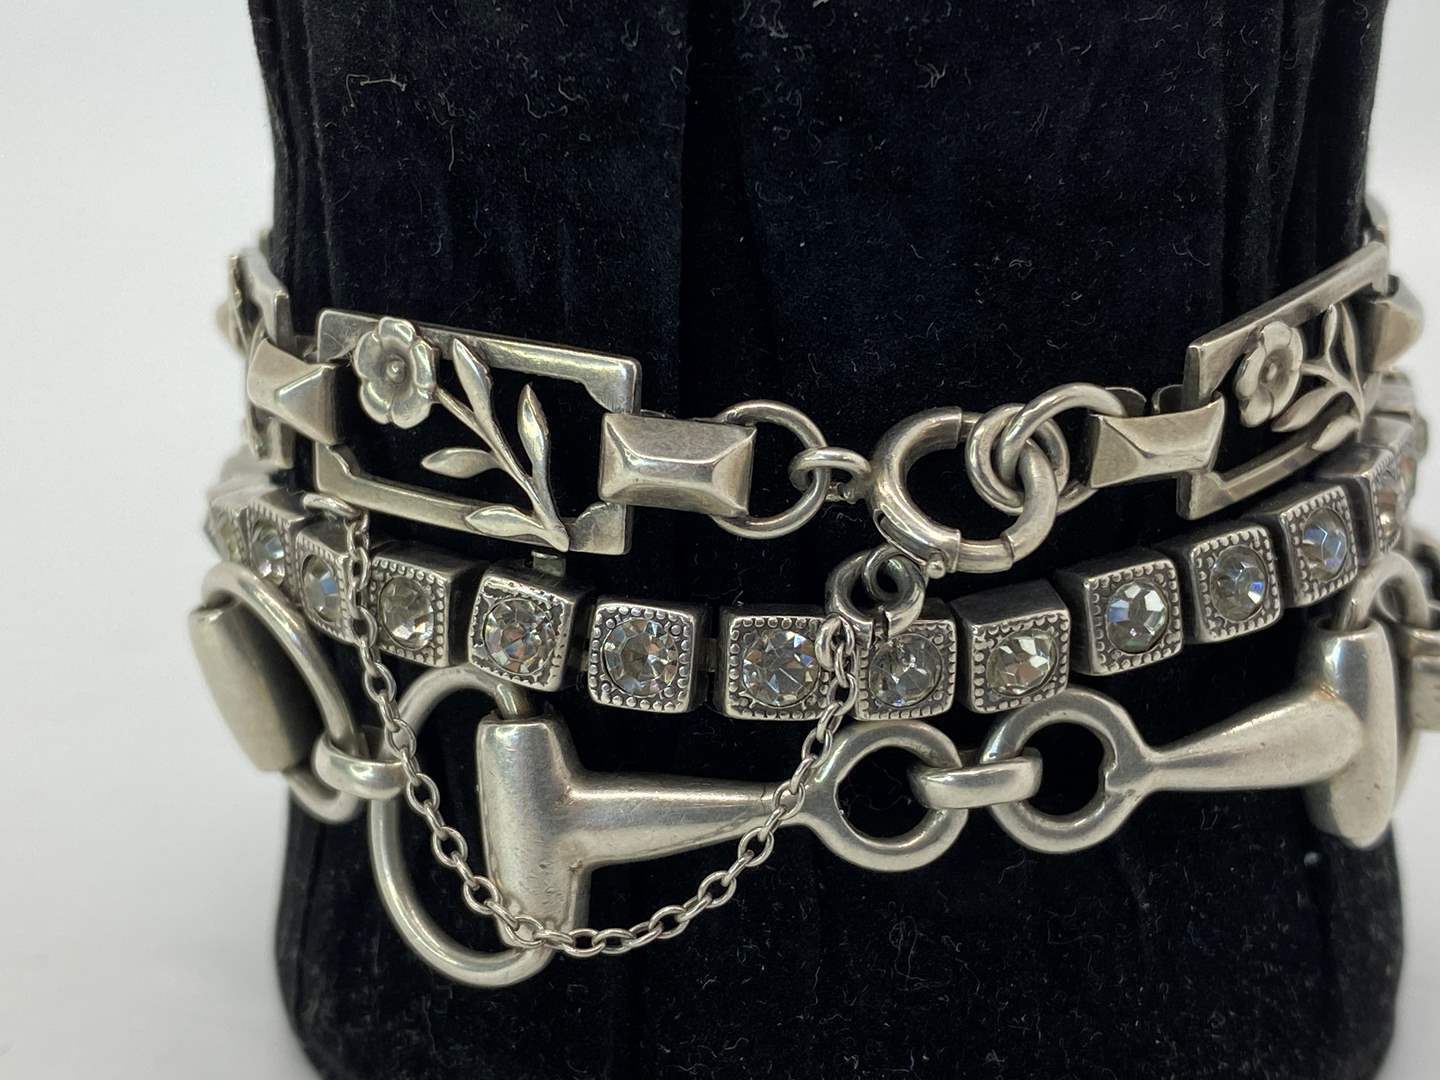 Lot # 6 - Beautiful Sterling Silver Bracelets (42.8g total weight) (main image)